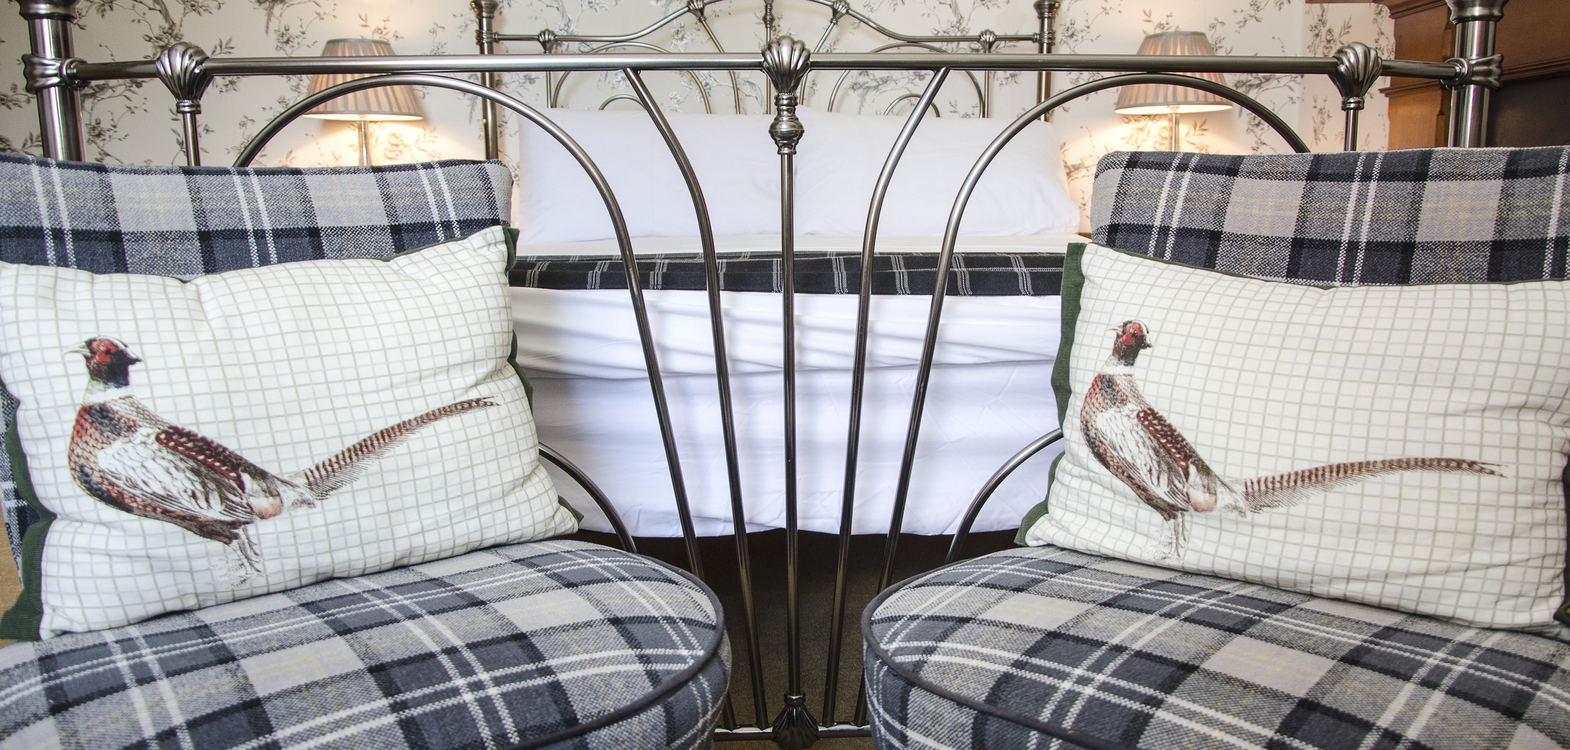 two grey tartan checked chairs at the end of a framed bed with cushions with pheasant covers